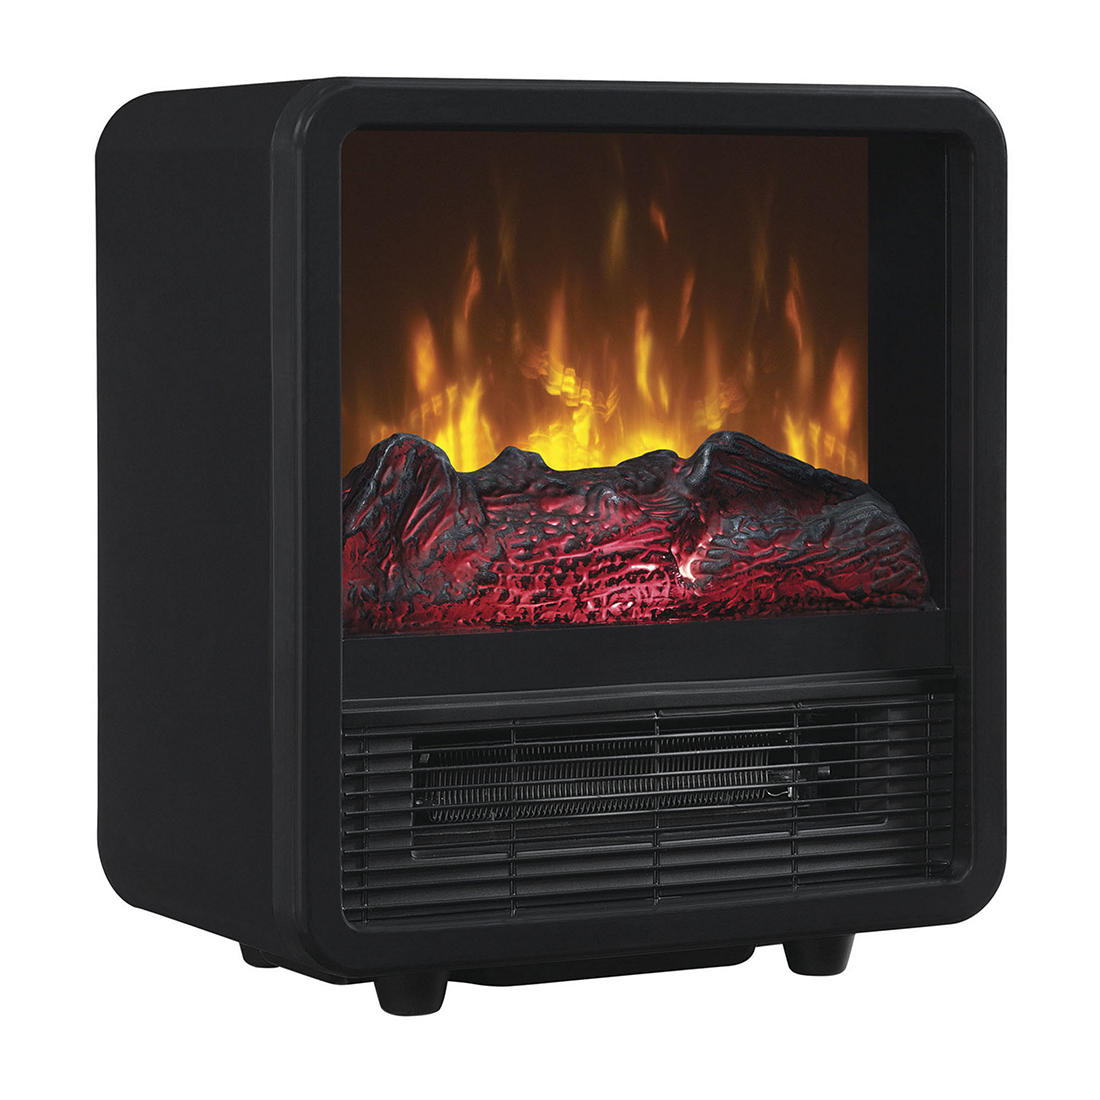 Duraflame Cube Infrared Stove Electric Stoves Stoves proplavani.cz